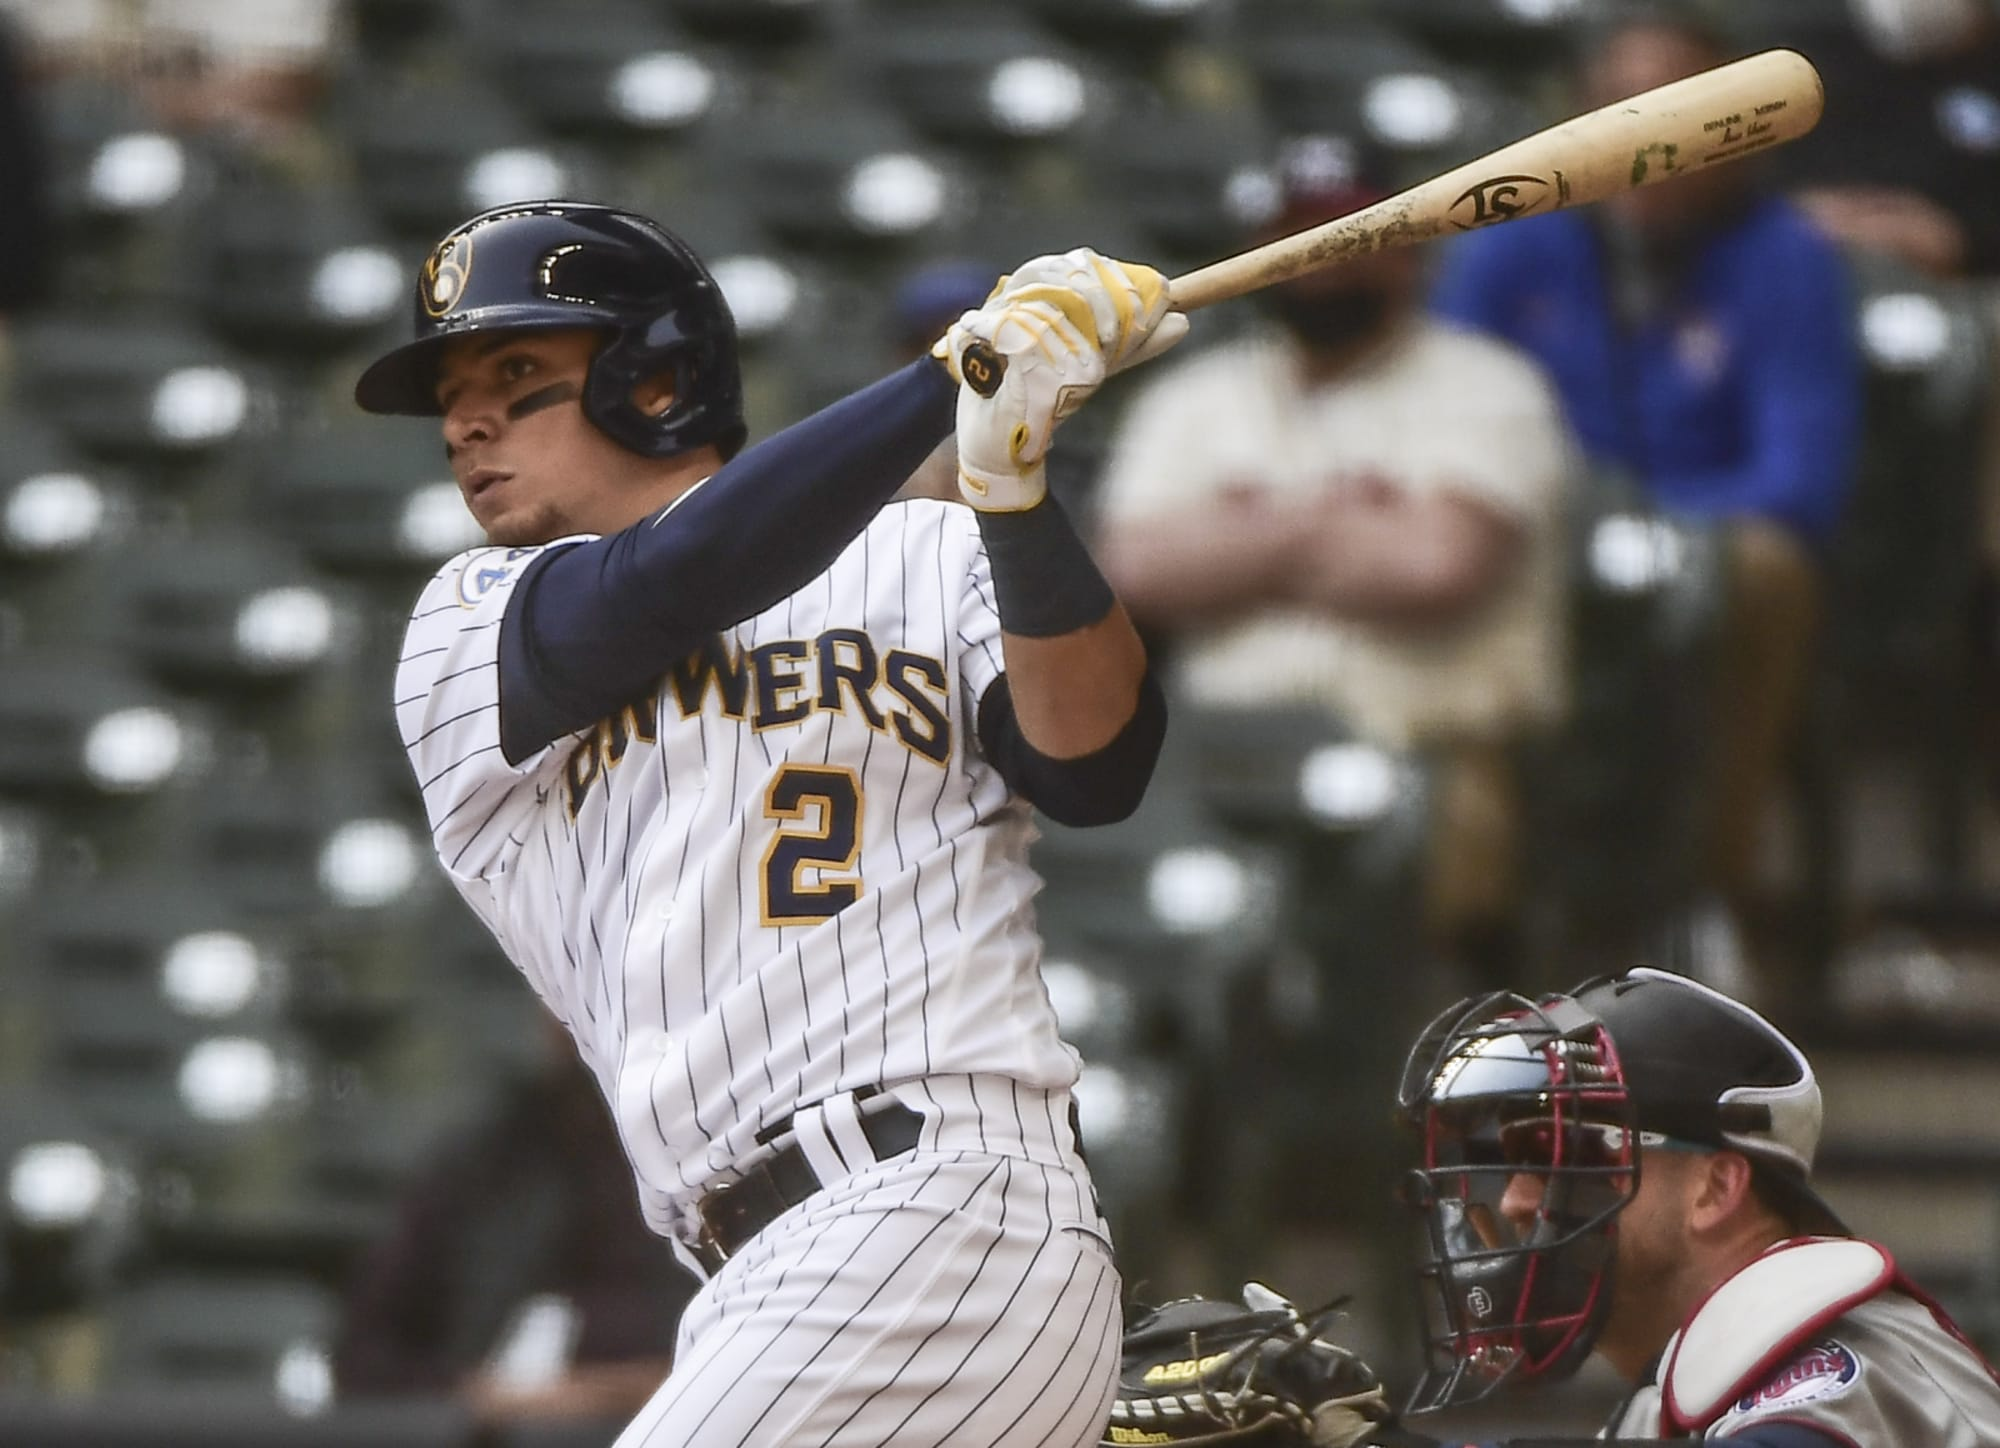 Brewers: Is Luis Urias the Best Shortstop in the Division?